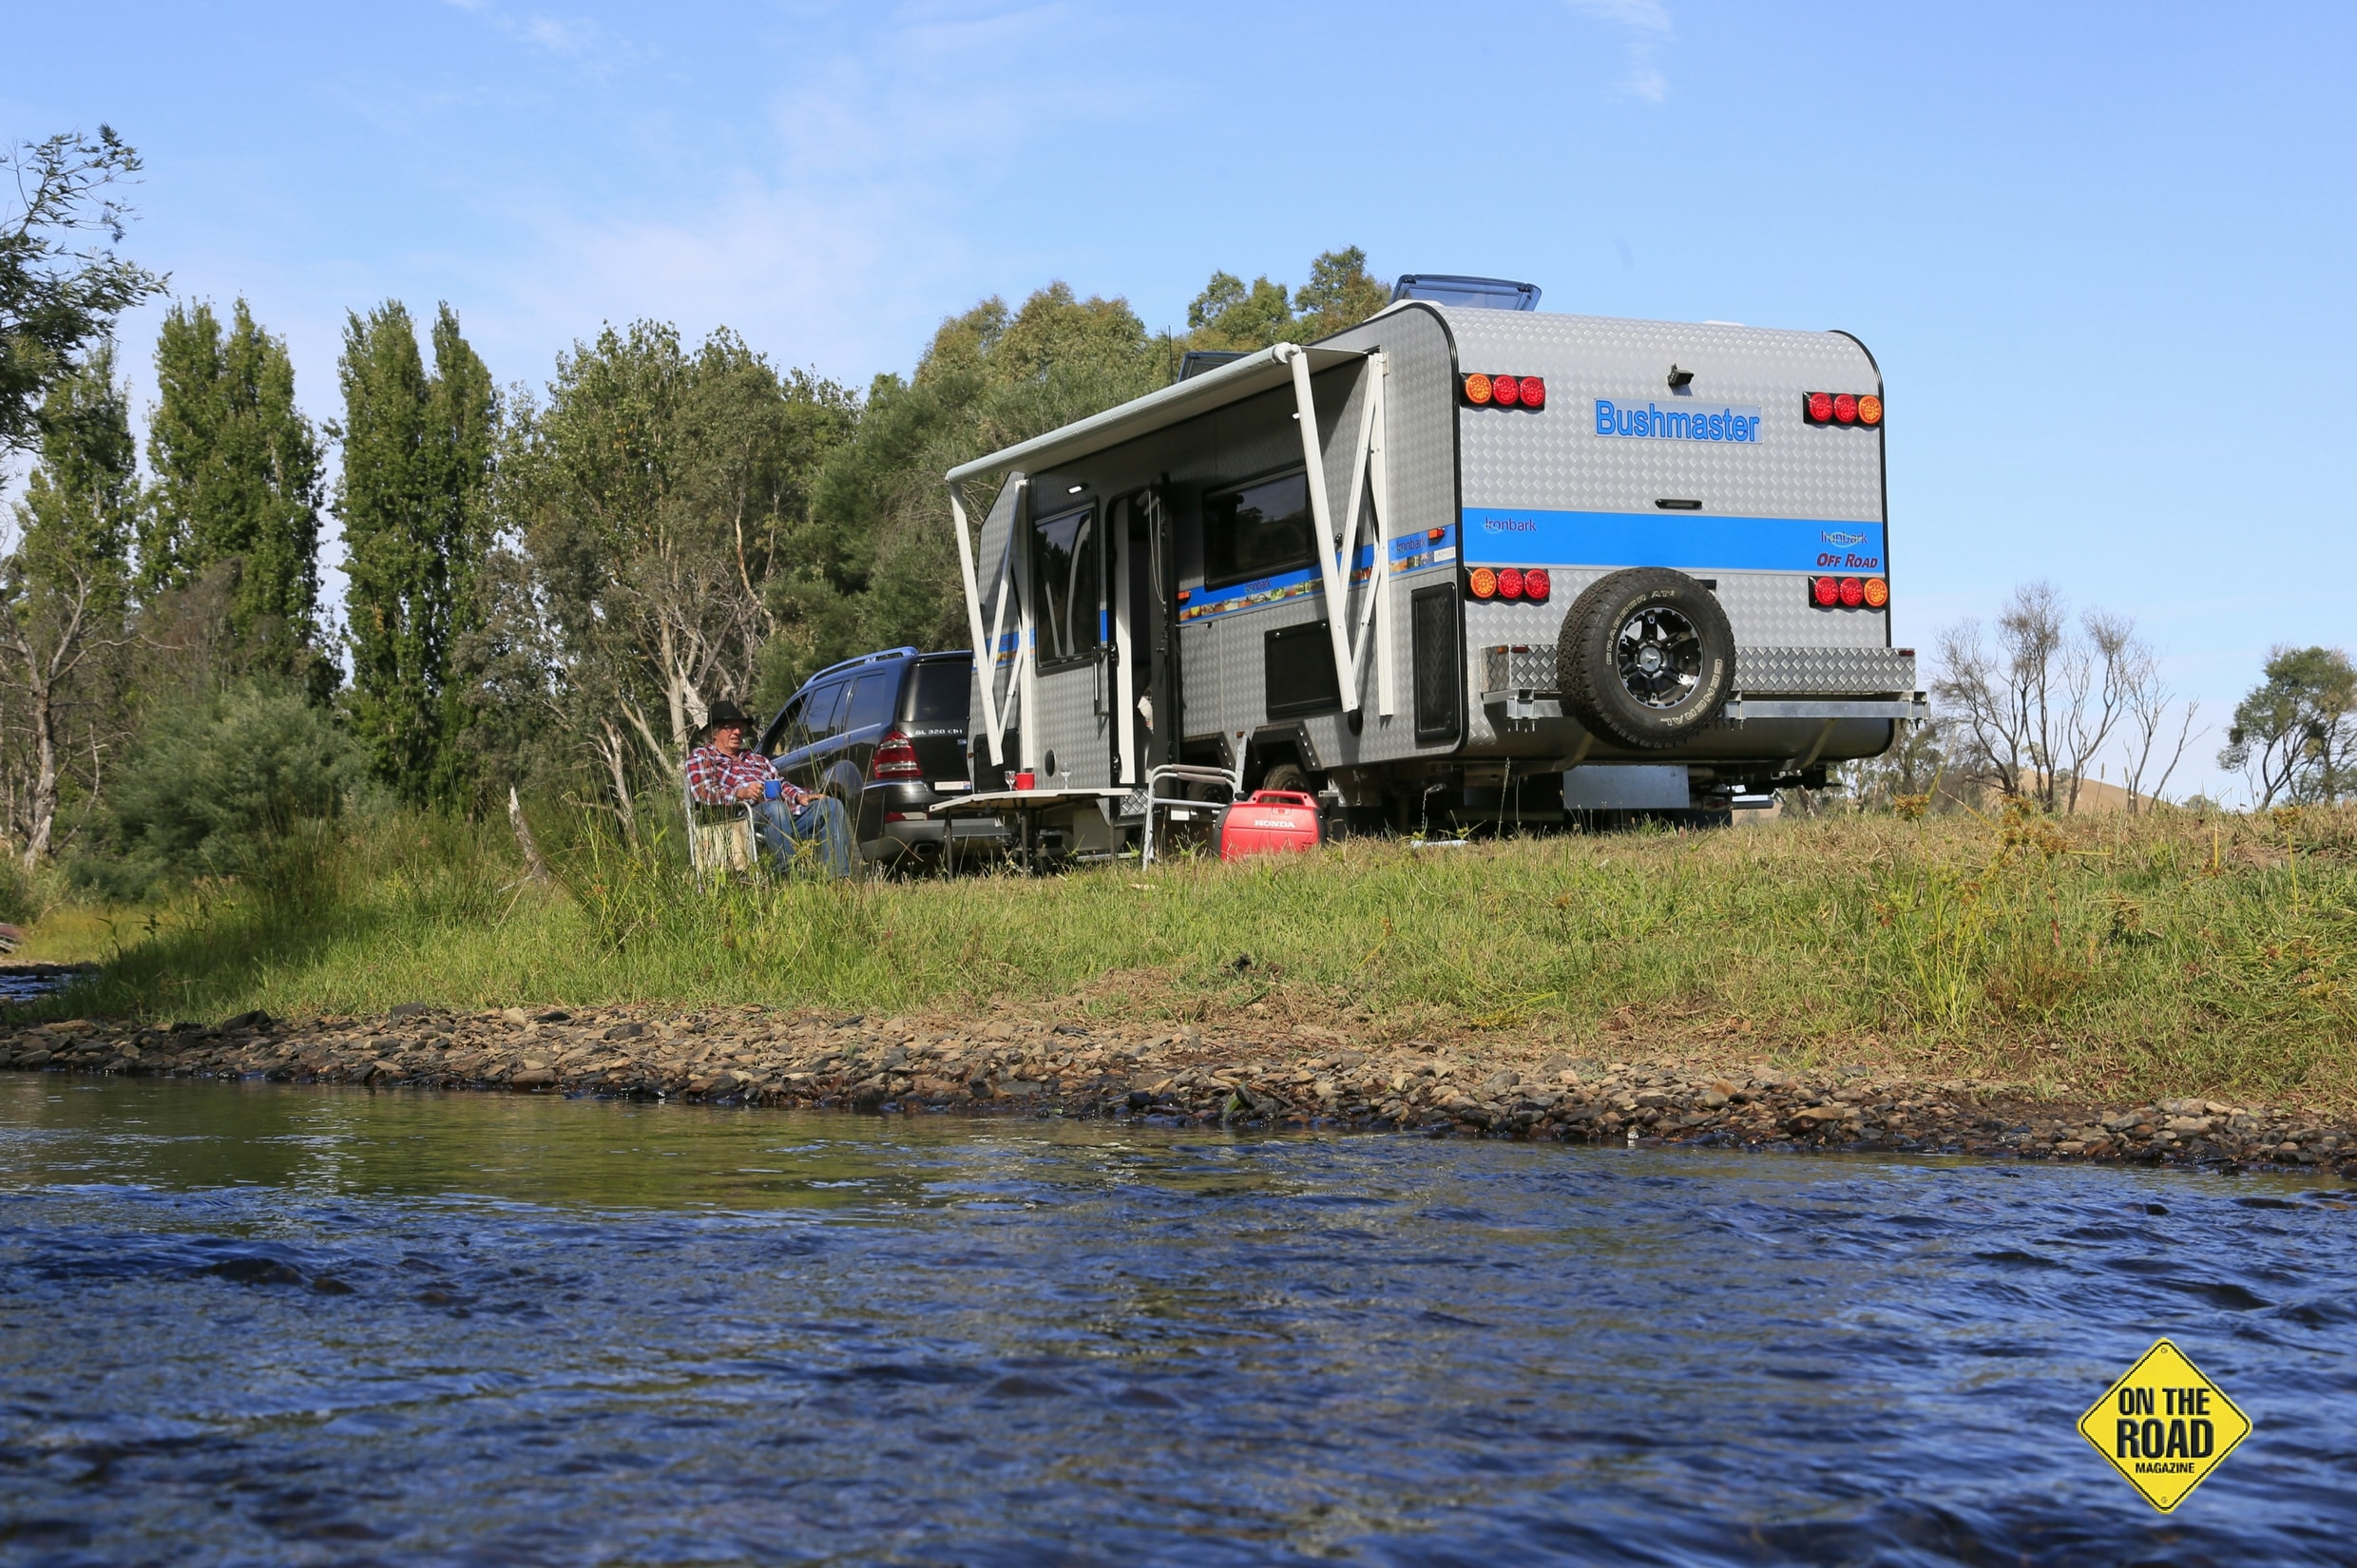 Bushmaster Ironbark camping in the river